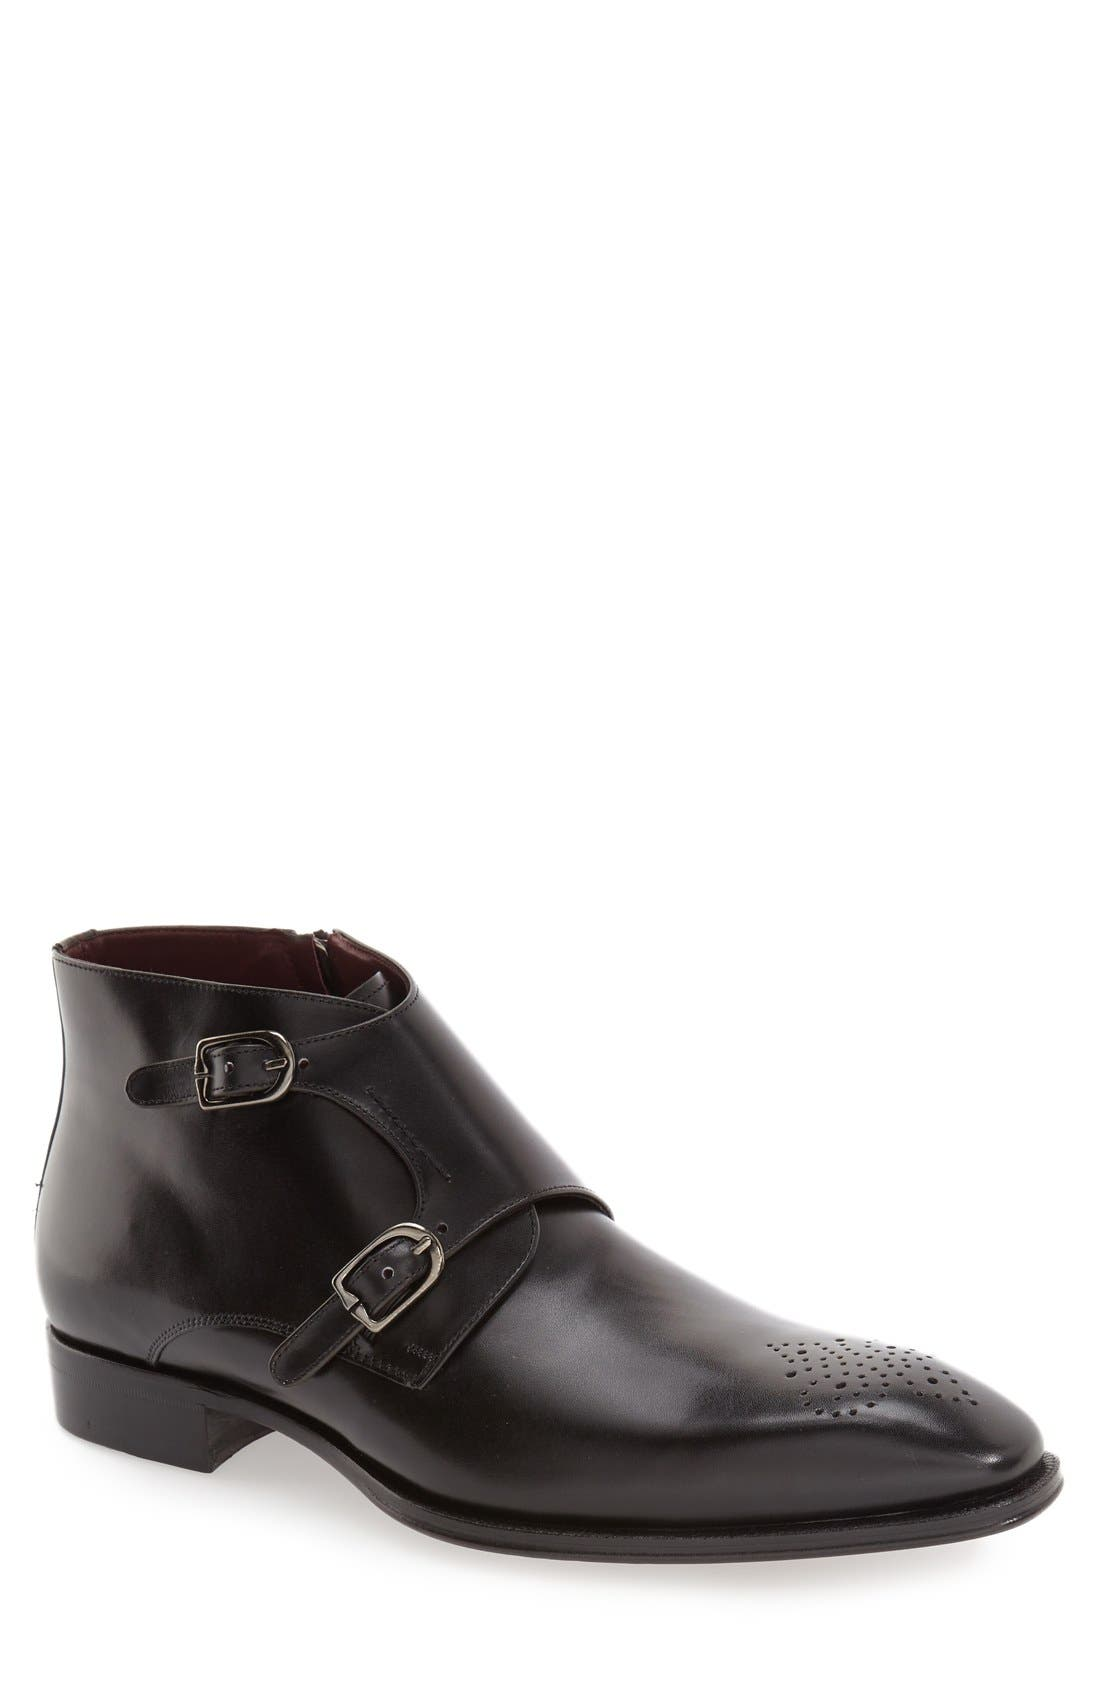 'Rocca' Midi Double Monk Strap Boot,                         Main,                         color, 001